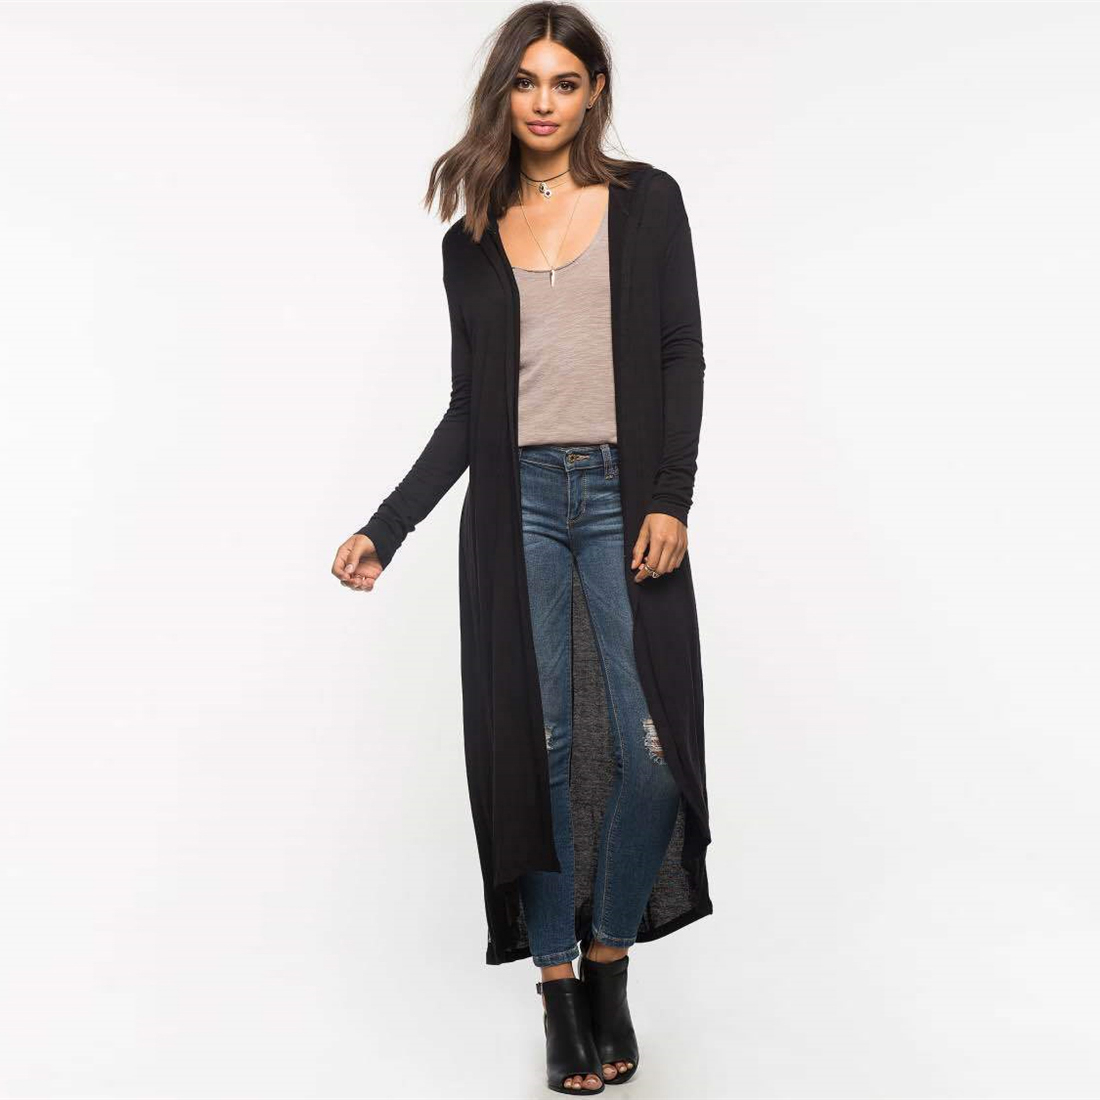 YJ Fashion Black Green Autumn Cardigans Women Full-Sleeved Long Thin Coats 2019 Irregular Hooded Cotton Sweaters Pull Femme Tops T190831